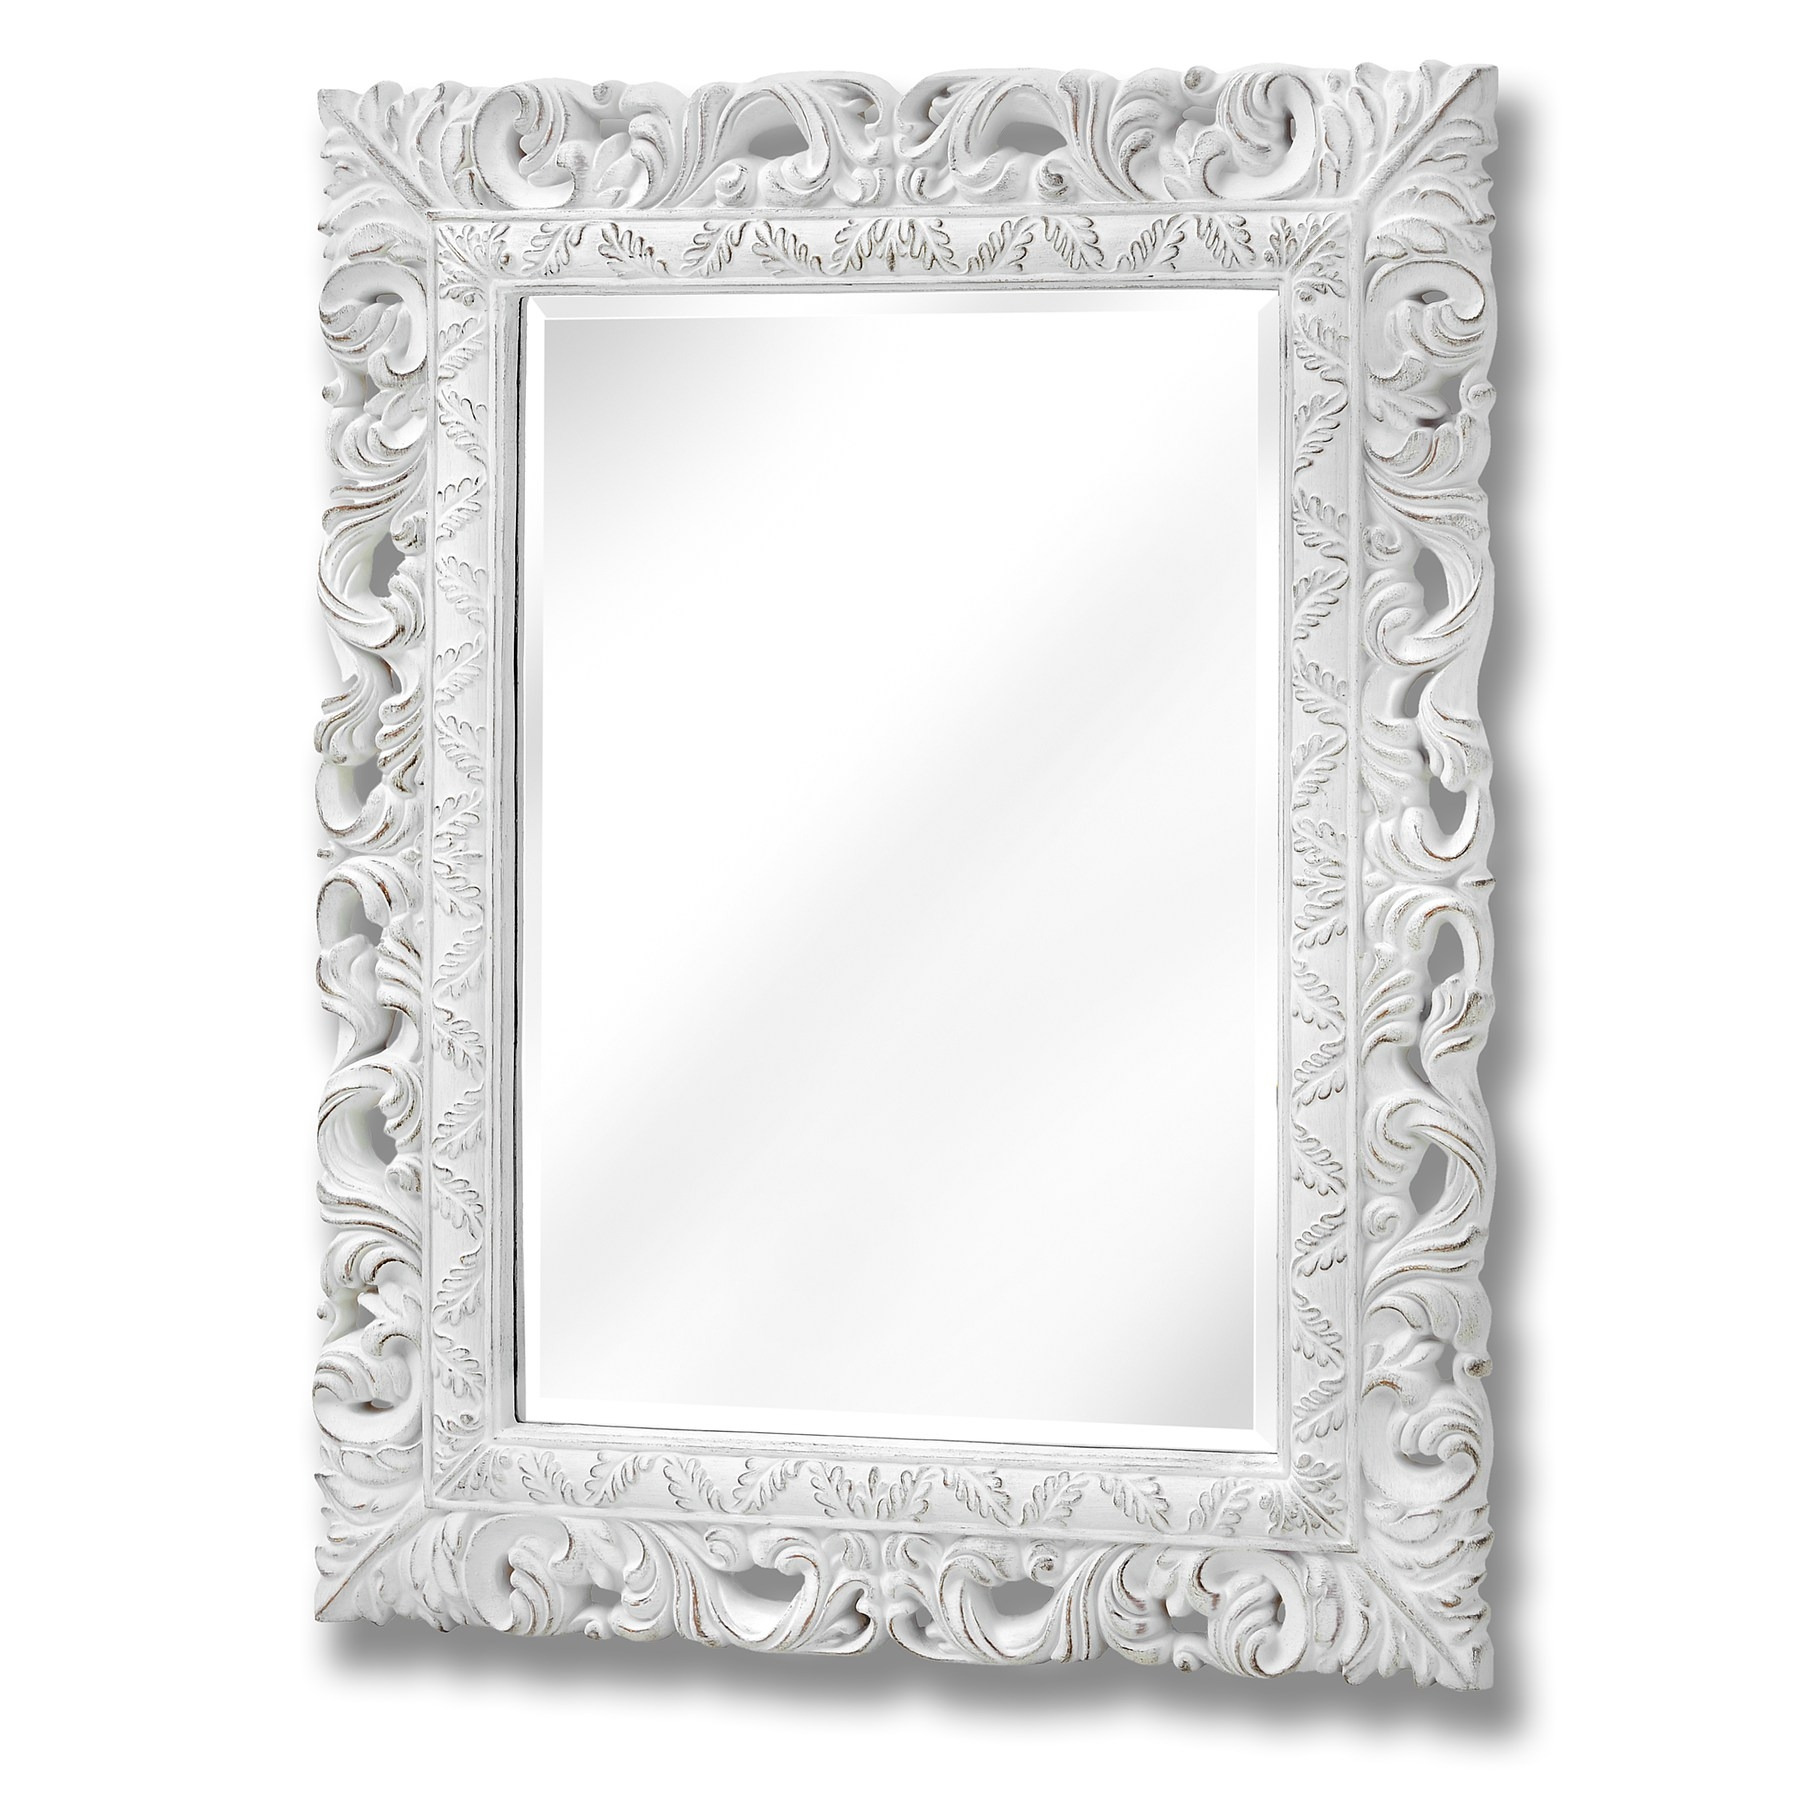 Mirrors Furniture From Baytree Interiors Regarding White Antique Mirror (Image 6 of 15)